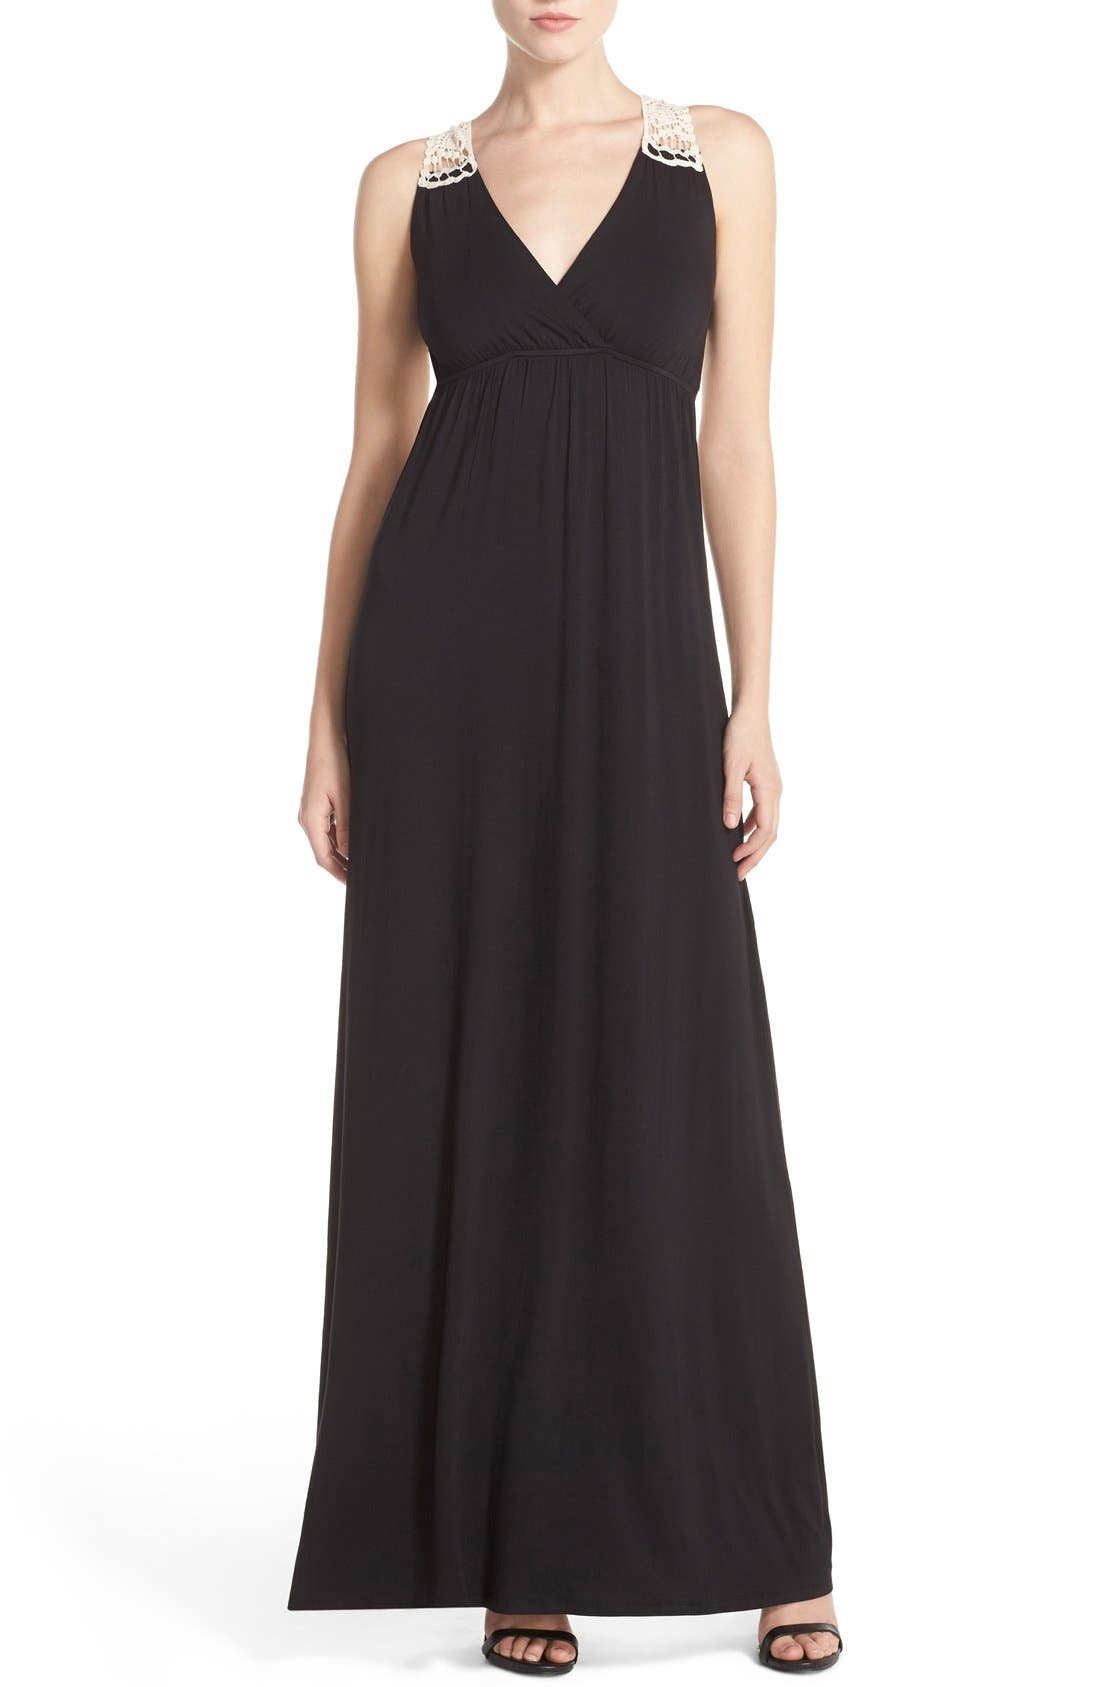 Main Image - Felicity & Coco Crochet Back Jersey Maxi Dress (Regular & Petite) (Nordstrom Exclusive)